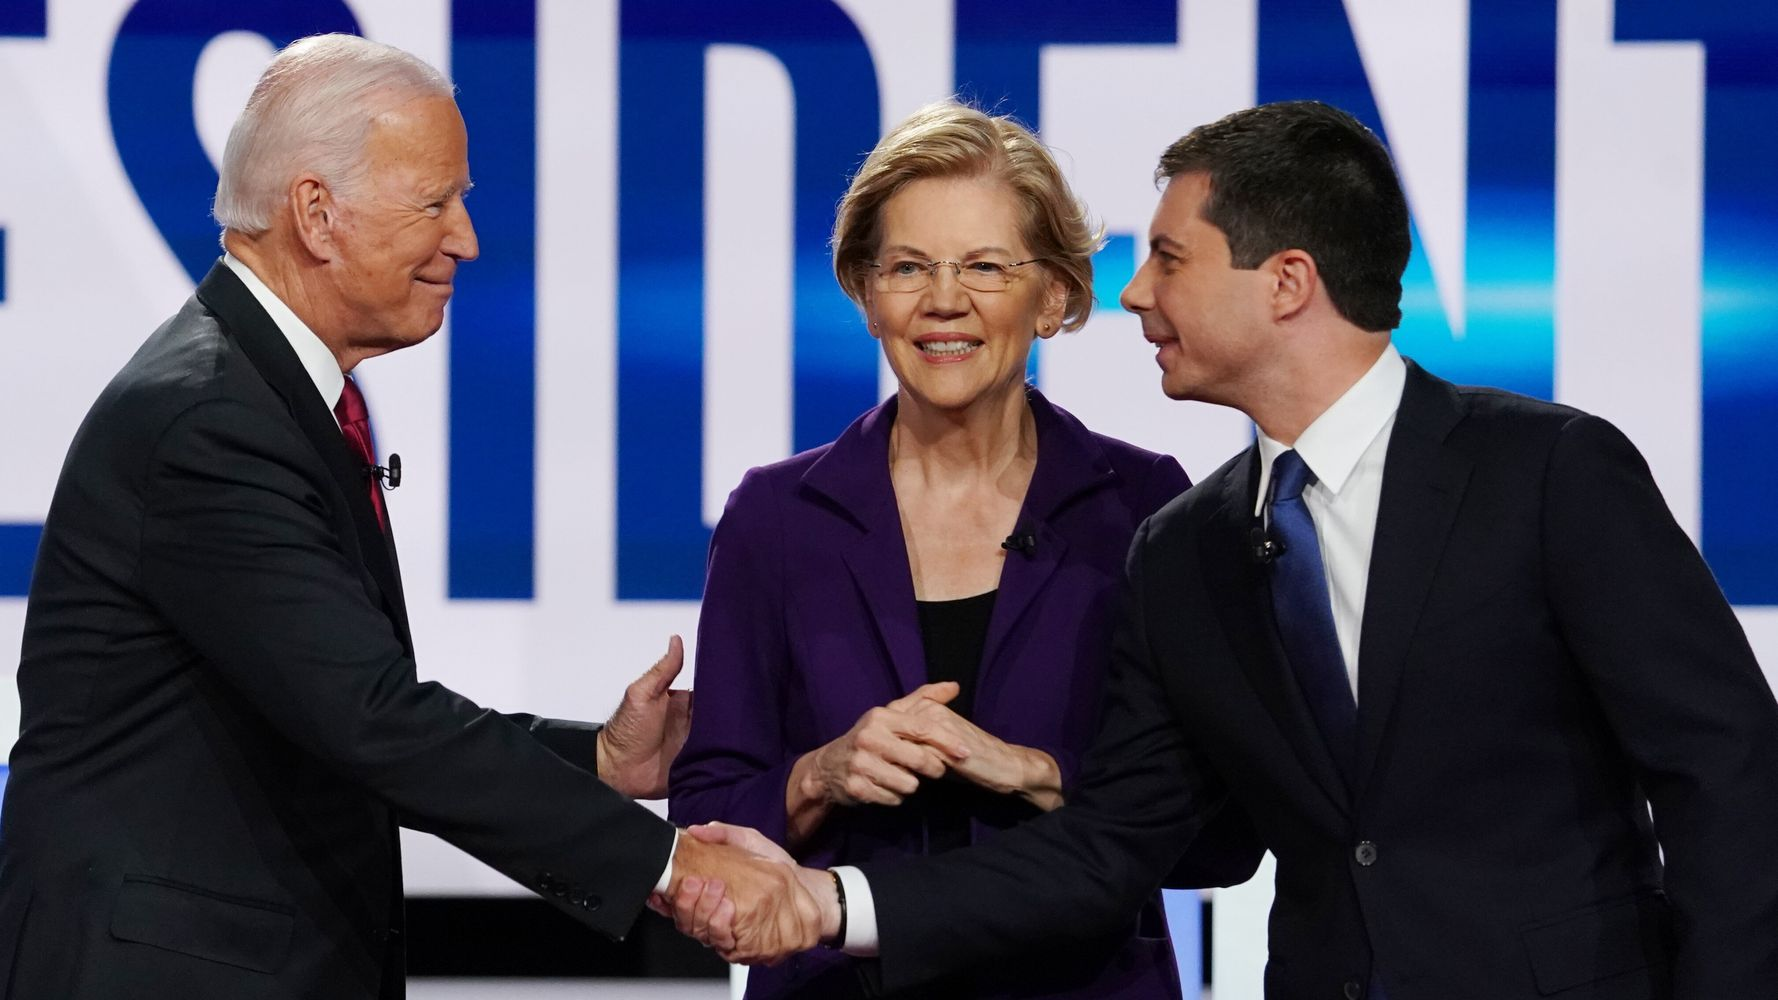 5 Takeaways From Tuesday's Democratic Debate: The Elizabeth Warren Pile-On